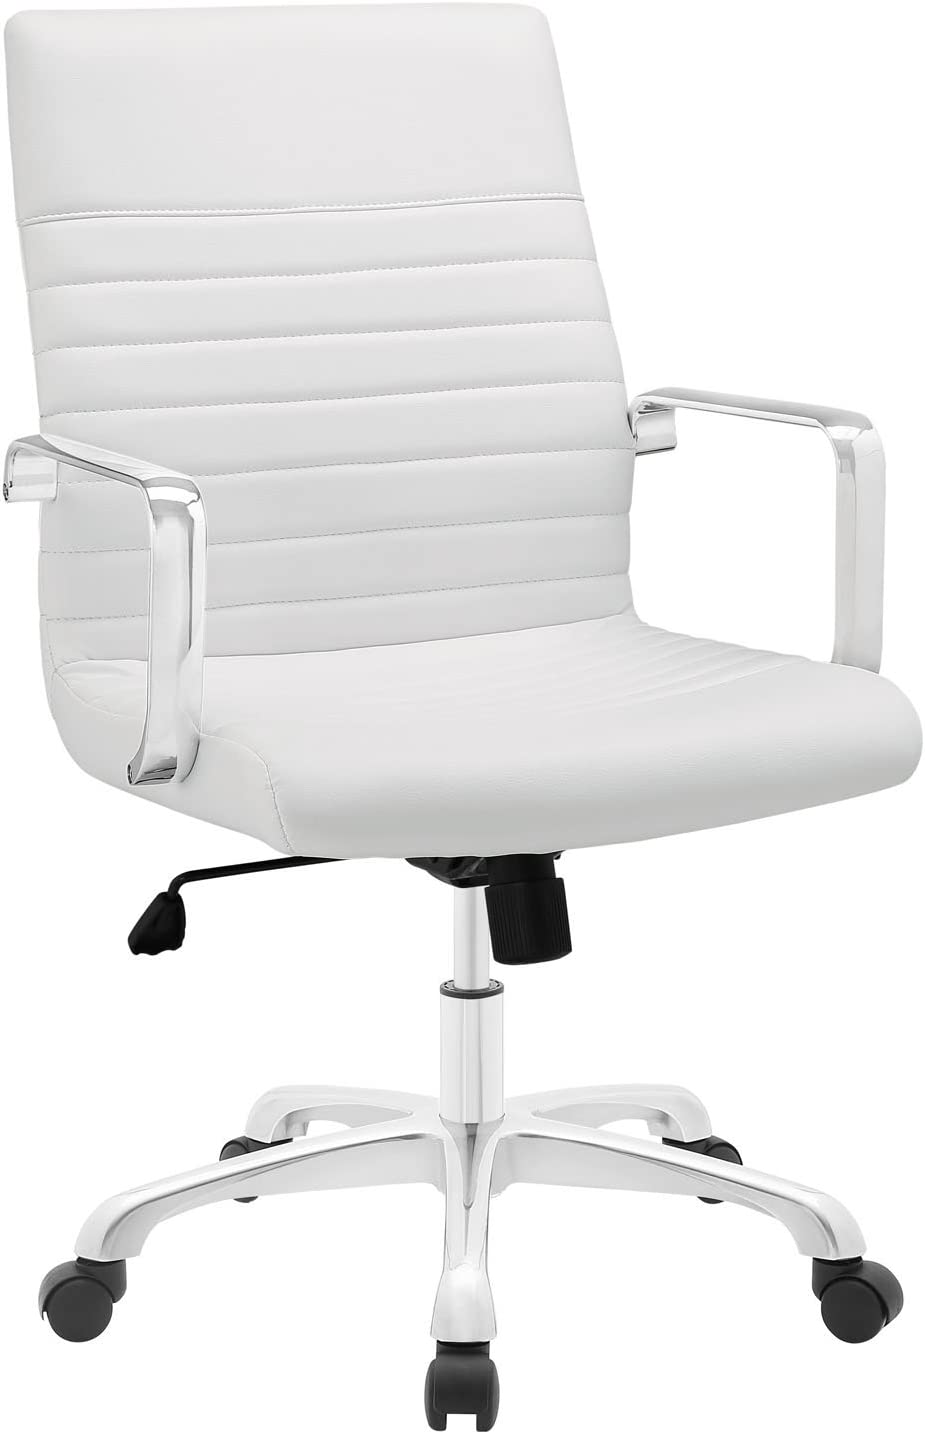 Modway MO-EEI-1534-WHI Finesse Mid Back Office Chair, White